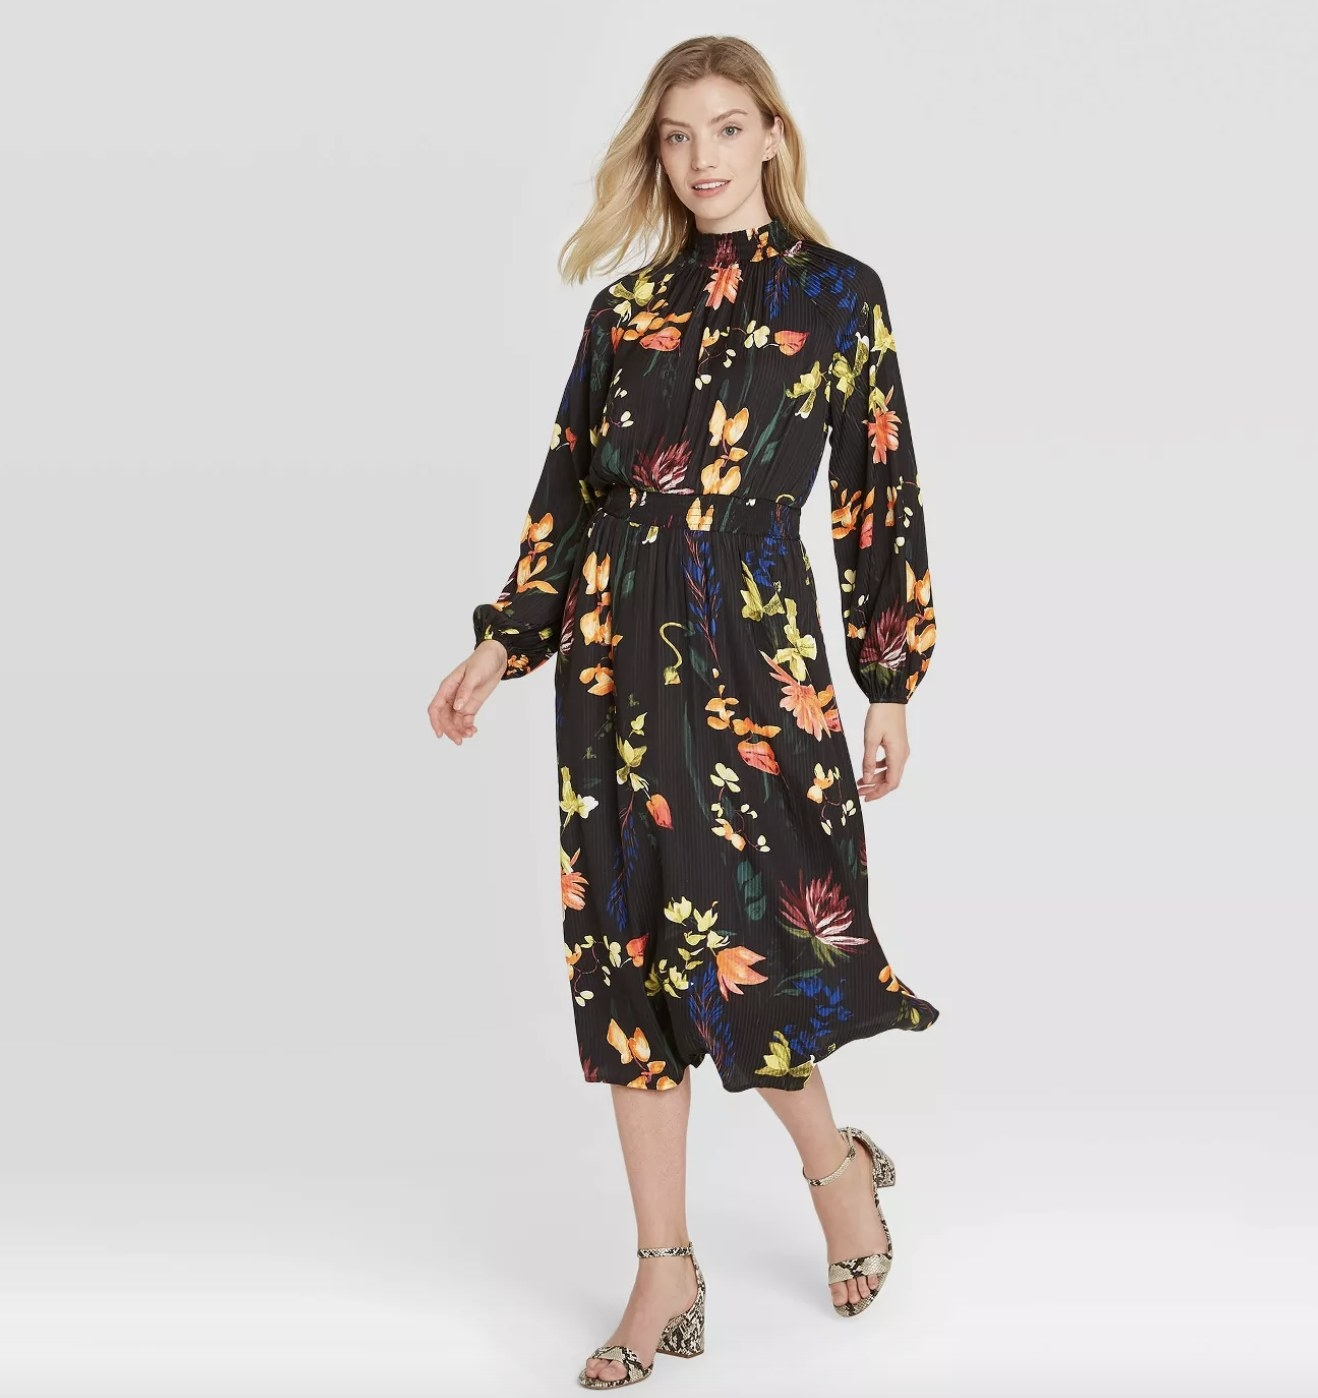 a black dress with colorful florals